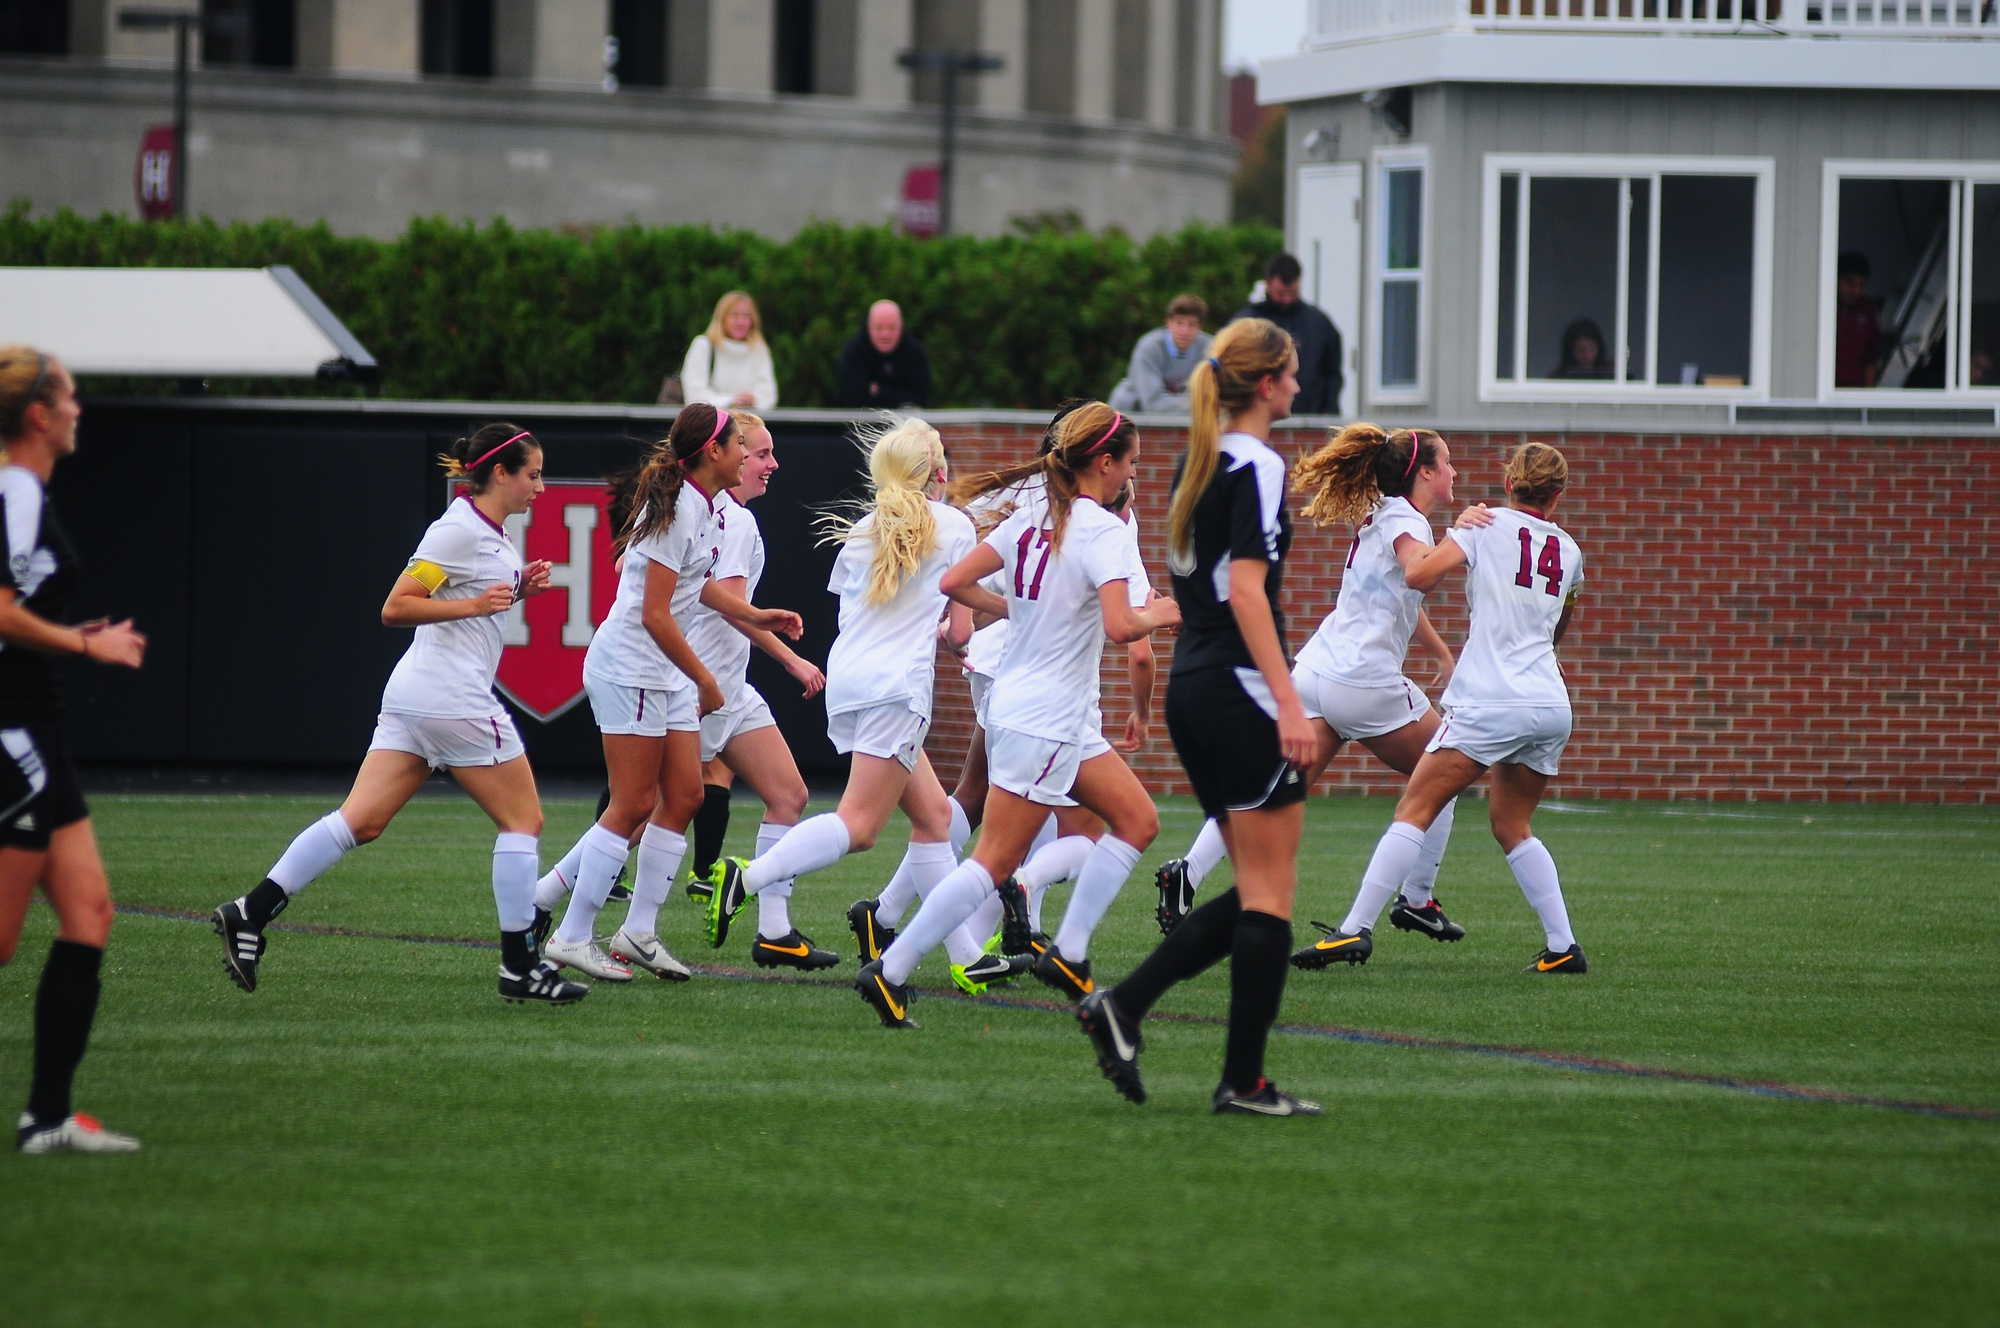 The women's soccer team took down CCSU, 6-0, in the first round of the NCAA Tournament.